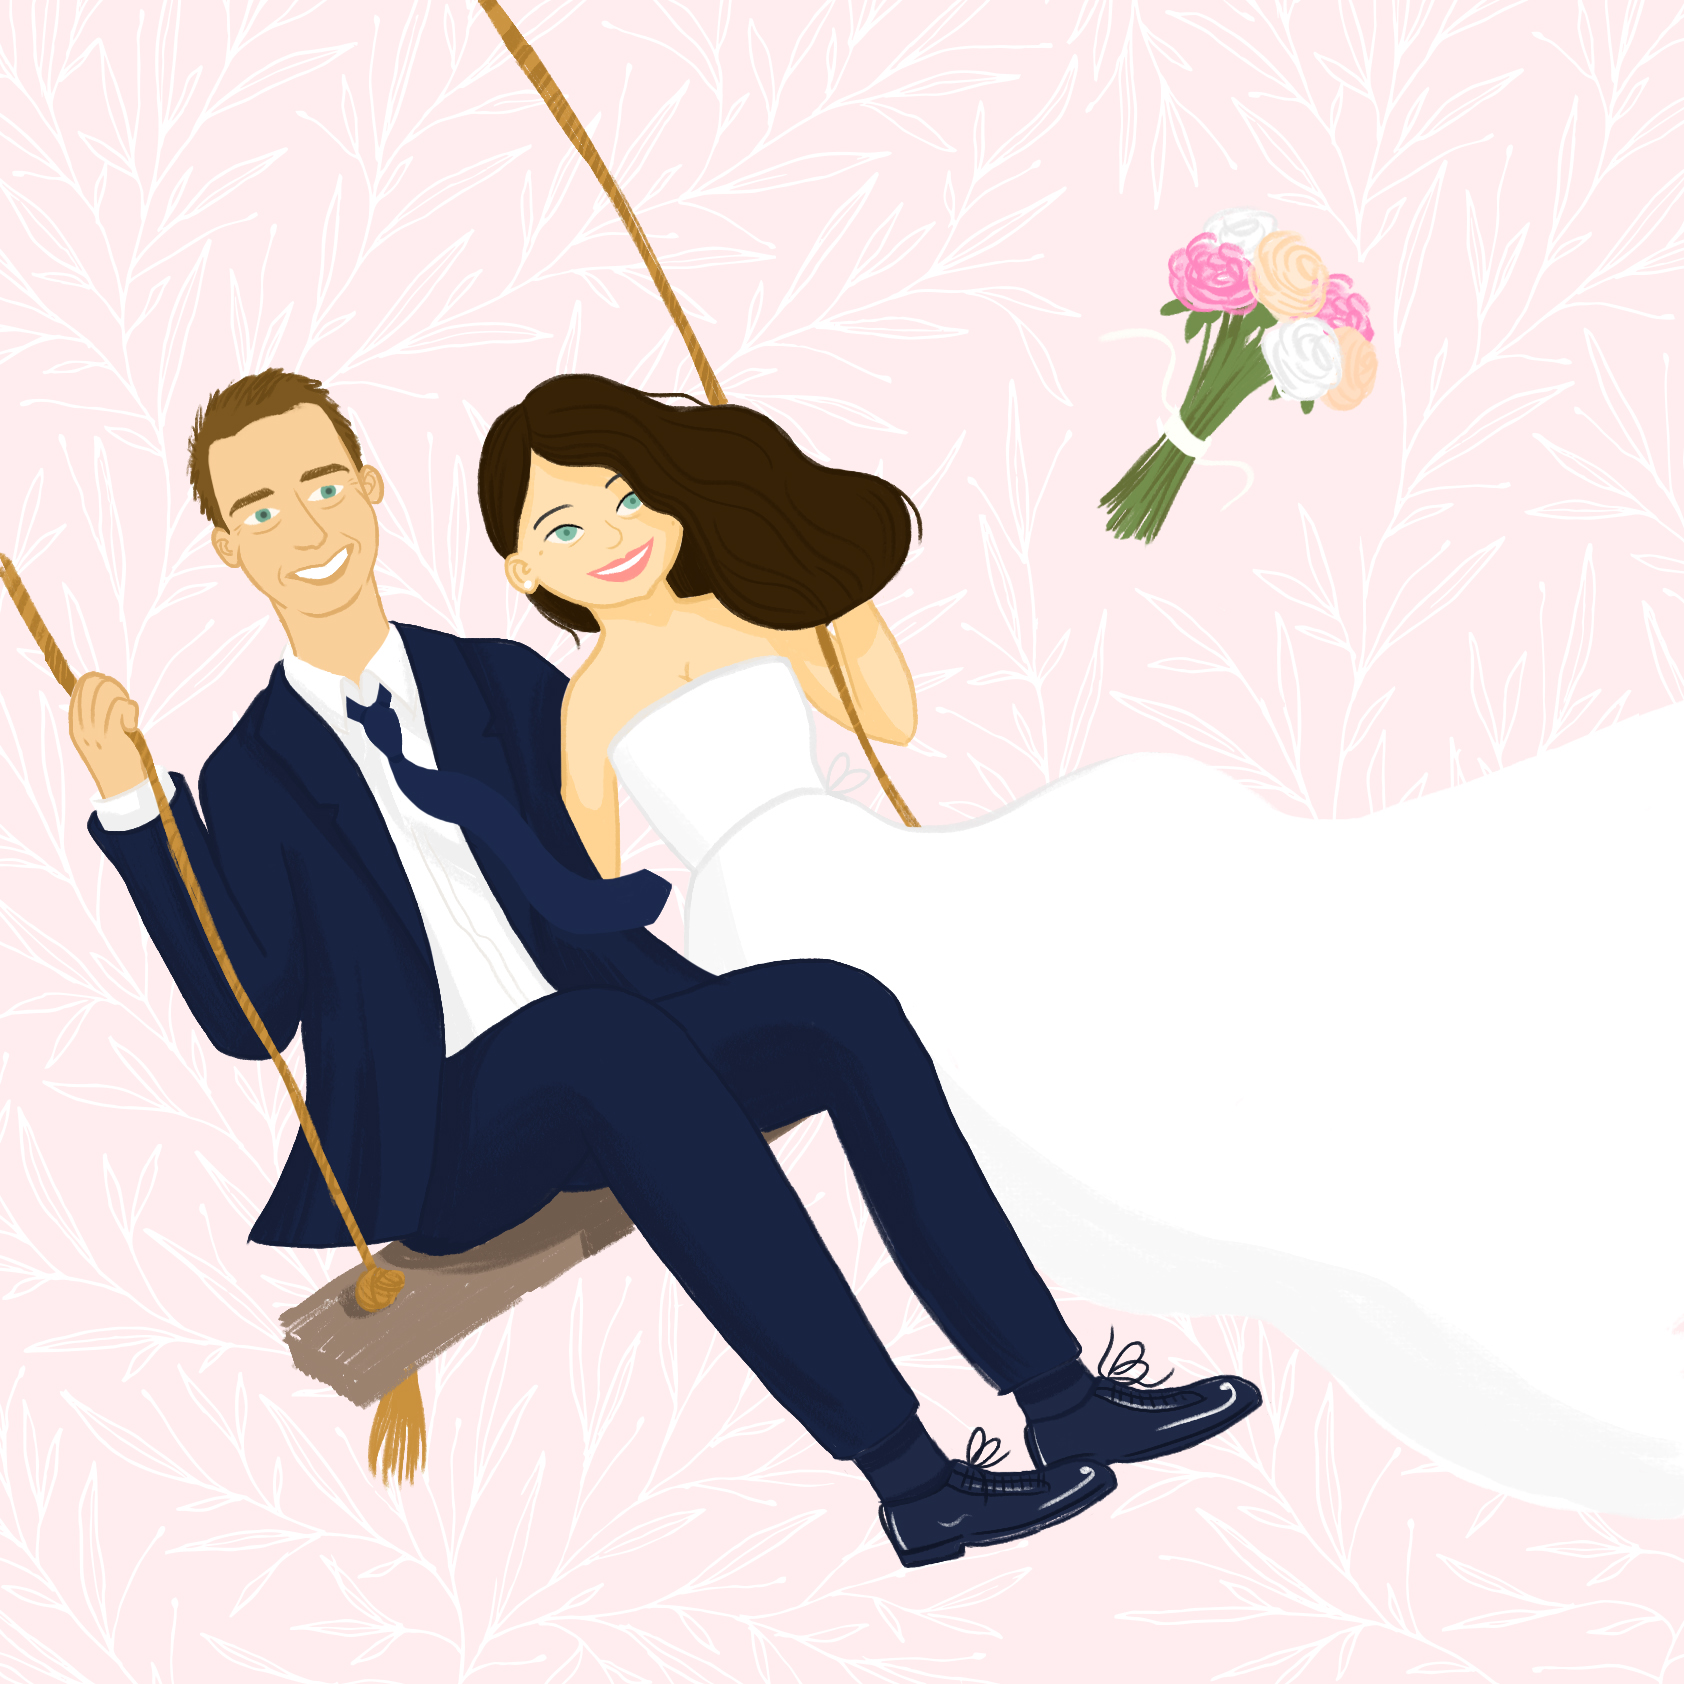 WEDDING INVITATION ILLUSTRATIONS